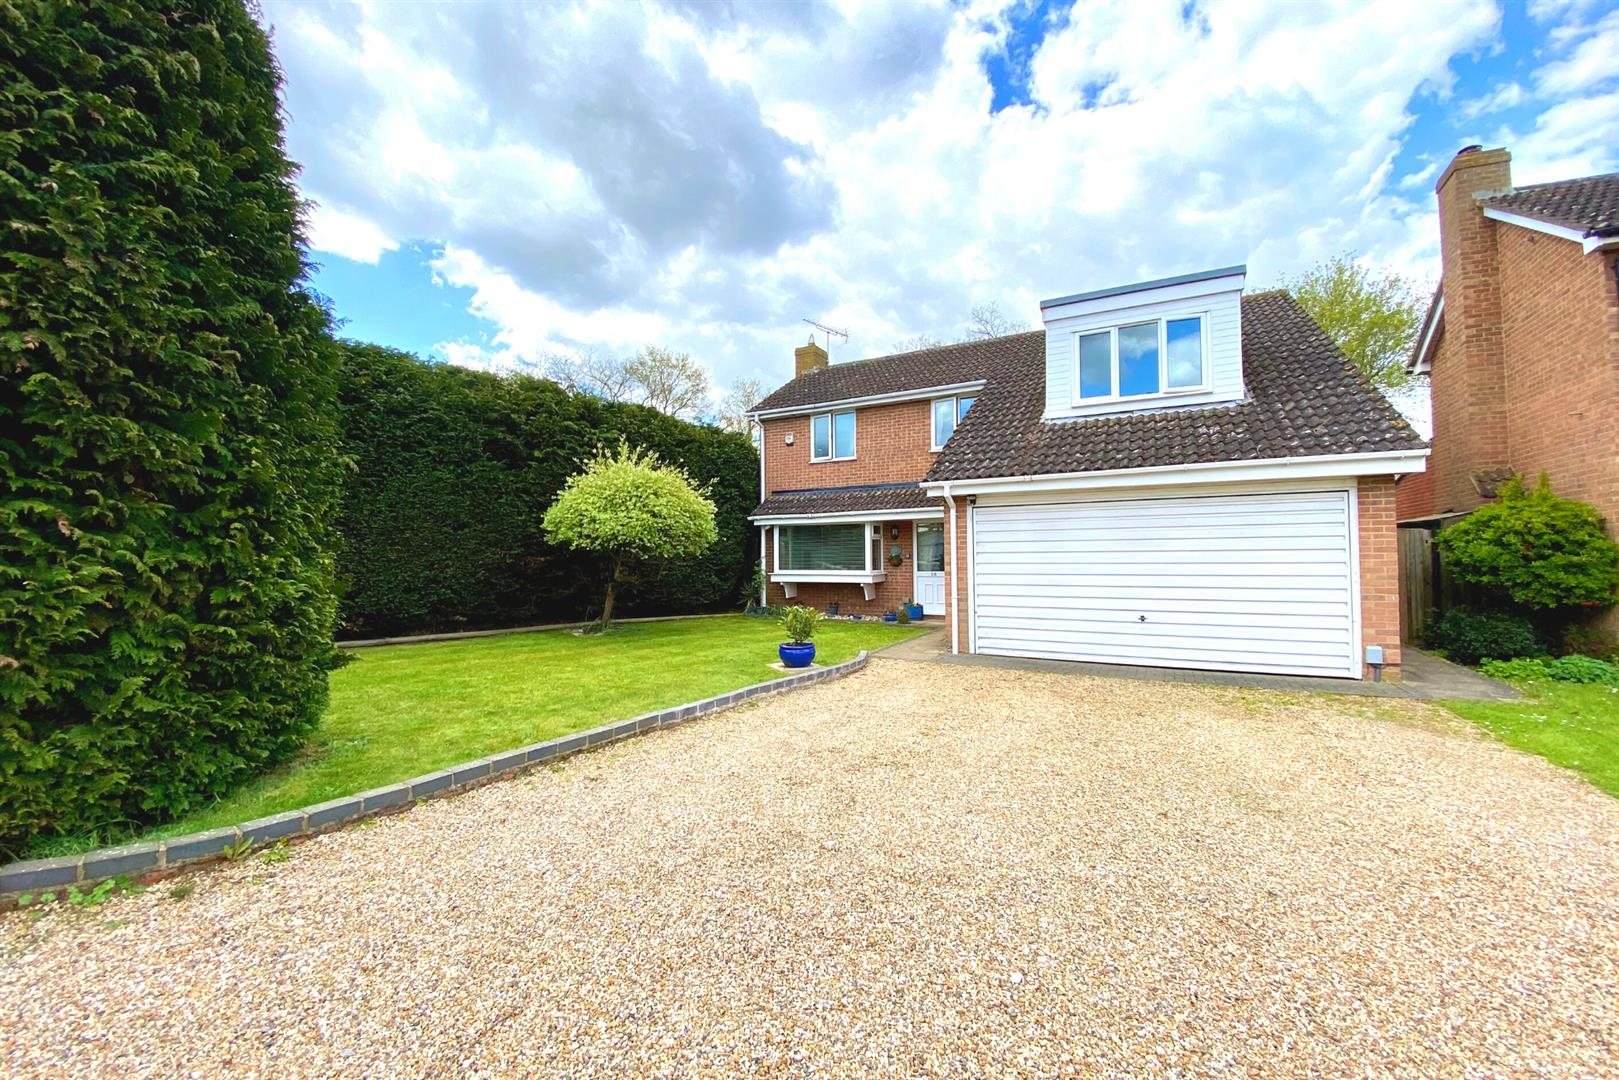 4 bed detached for sale in Winnersh  - Property Image 1